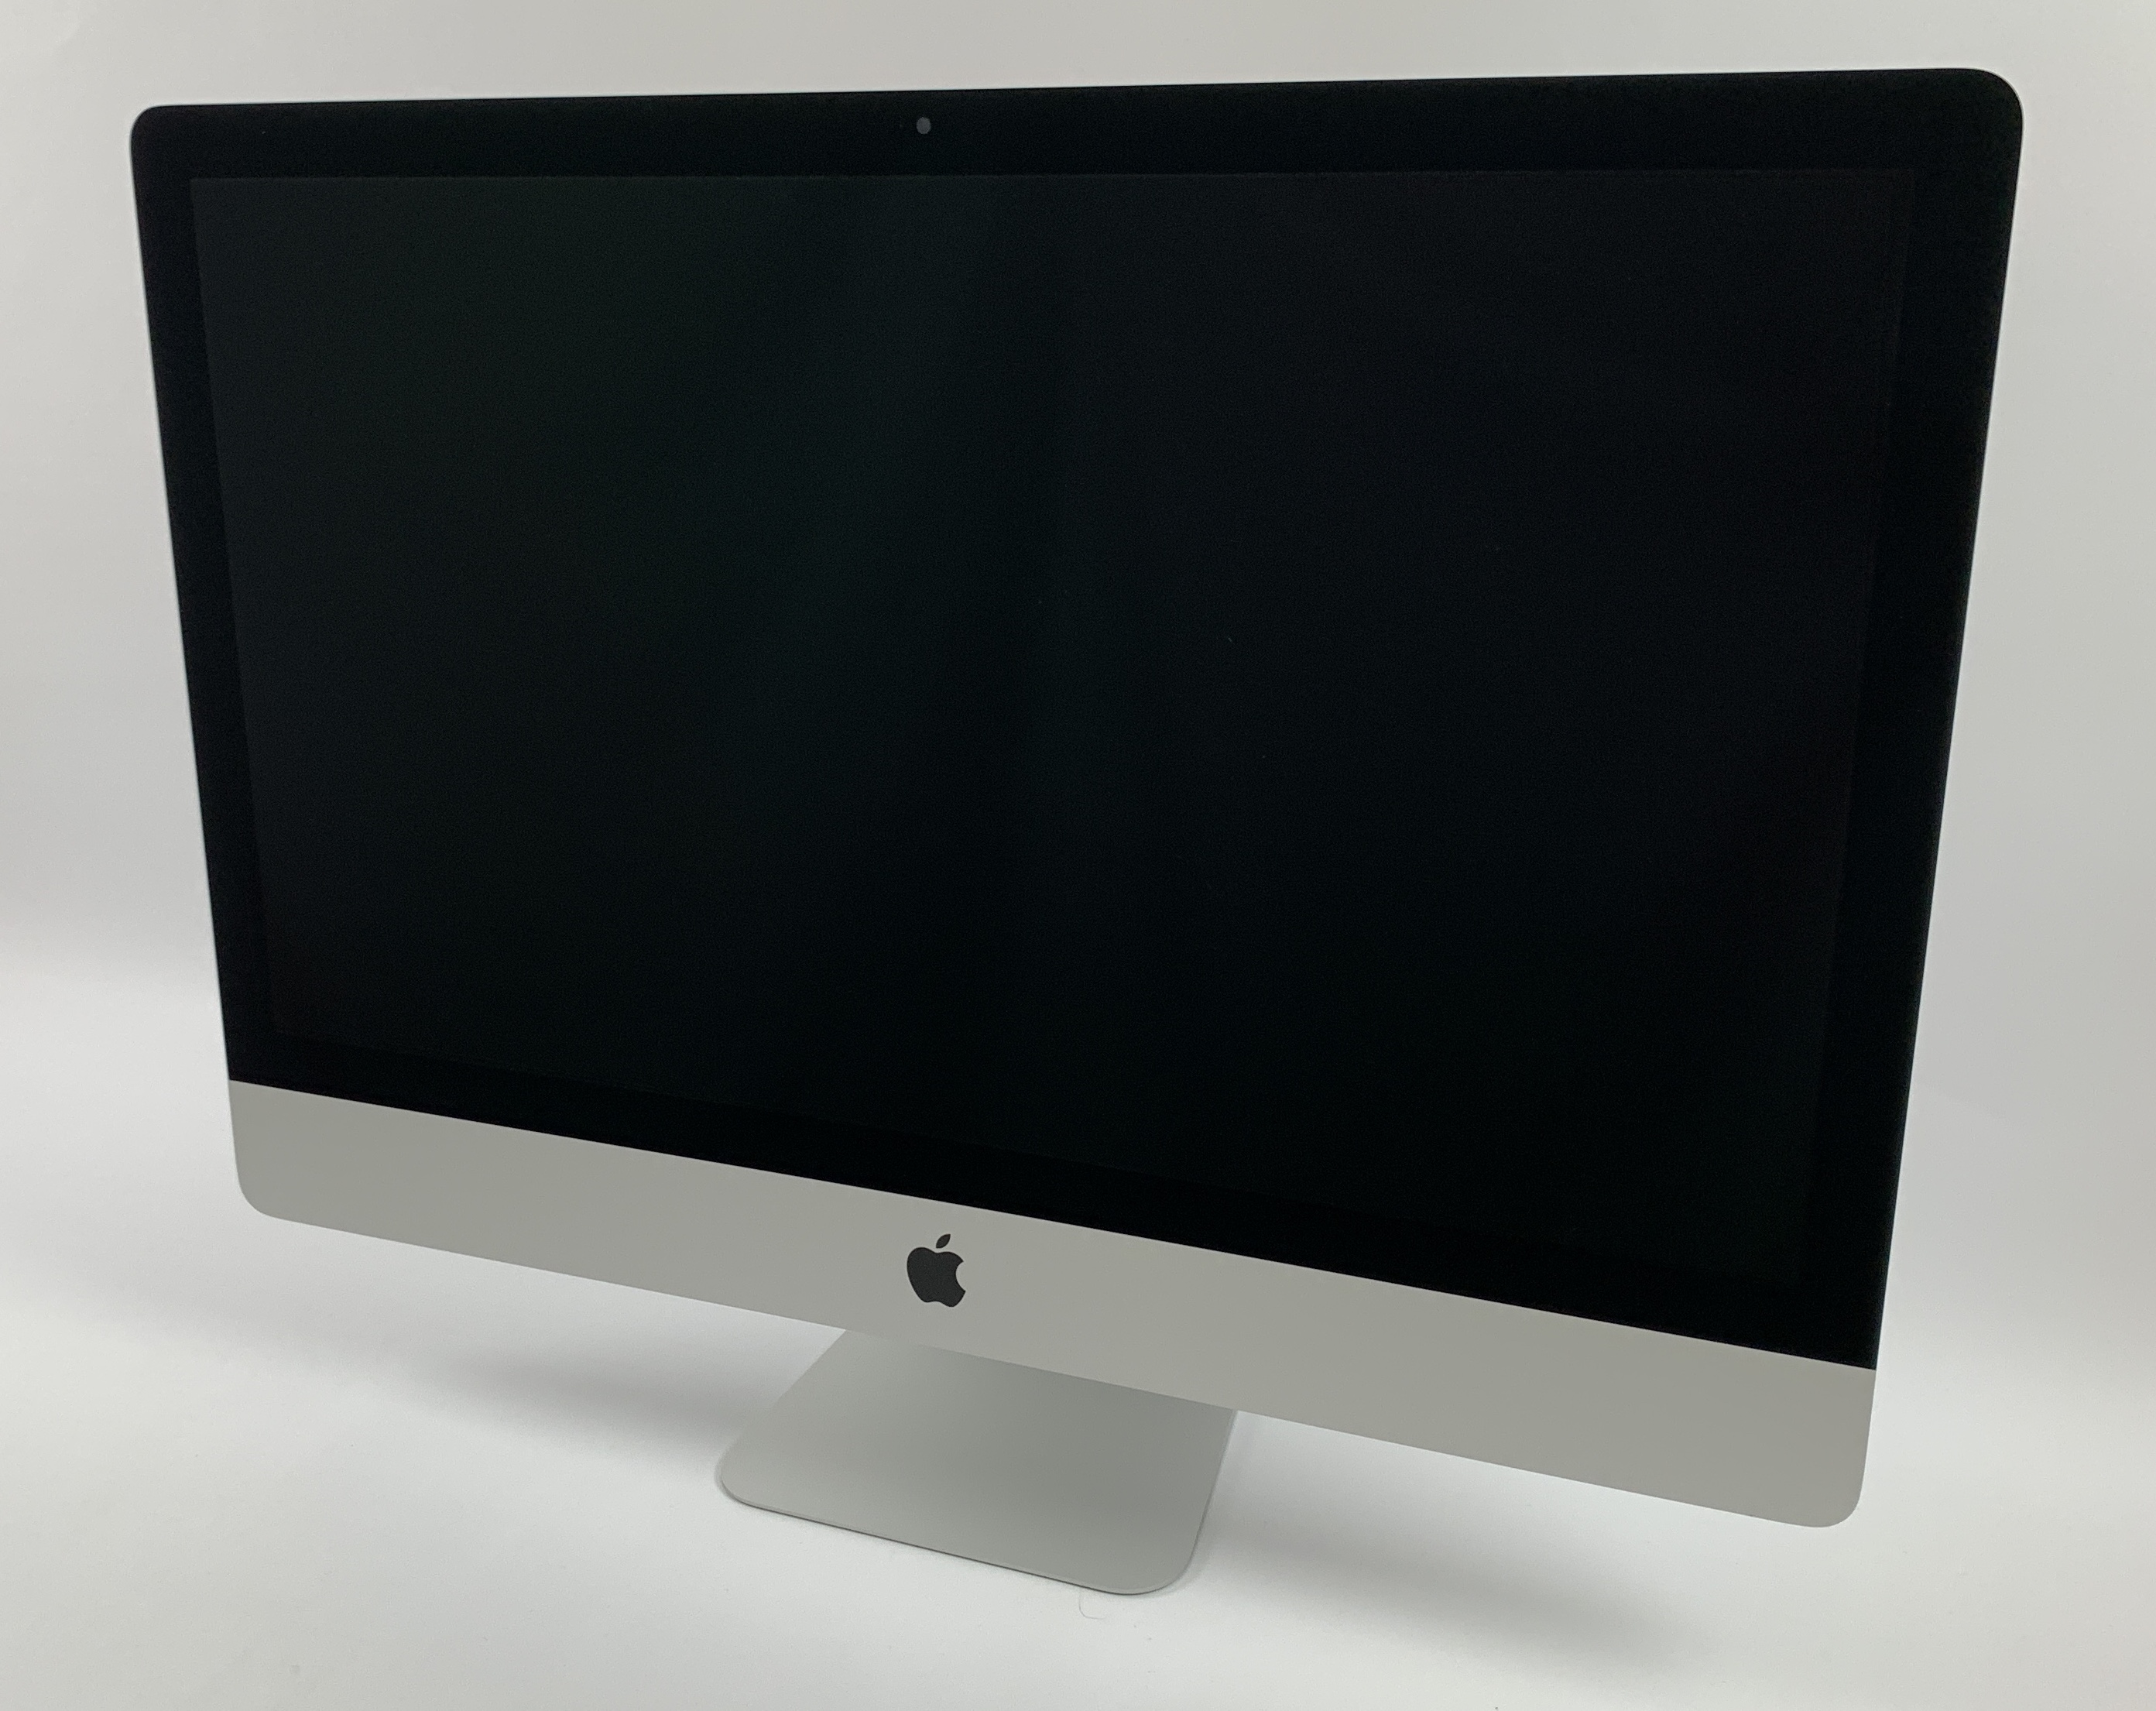 "iMac 27"" Retina 5K Early 2019 (Intel 6-Core i5 3.0 GHz 8 GB RAM 512 GB SSD), Intel 6-Core i5 3.0 GHz, 8 GB RAM, 512 GB SSD, Bild 1"